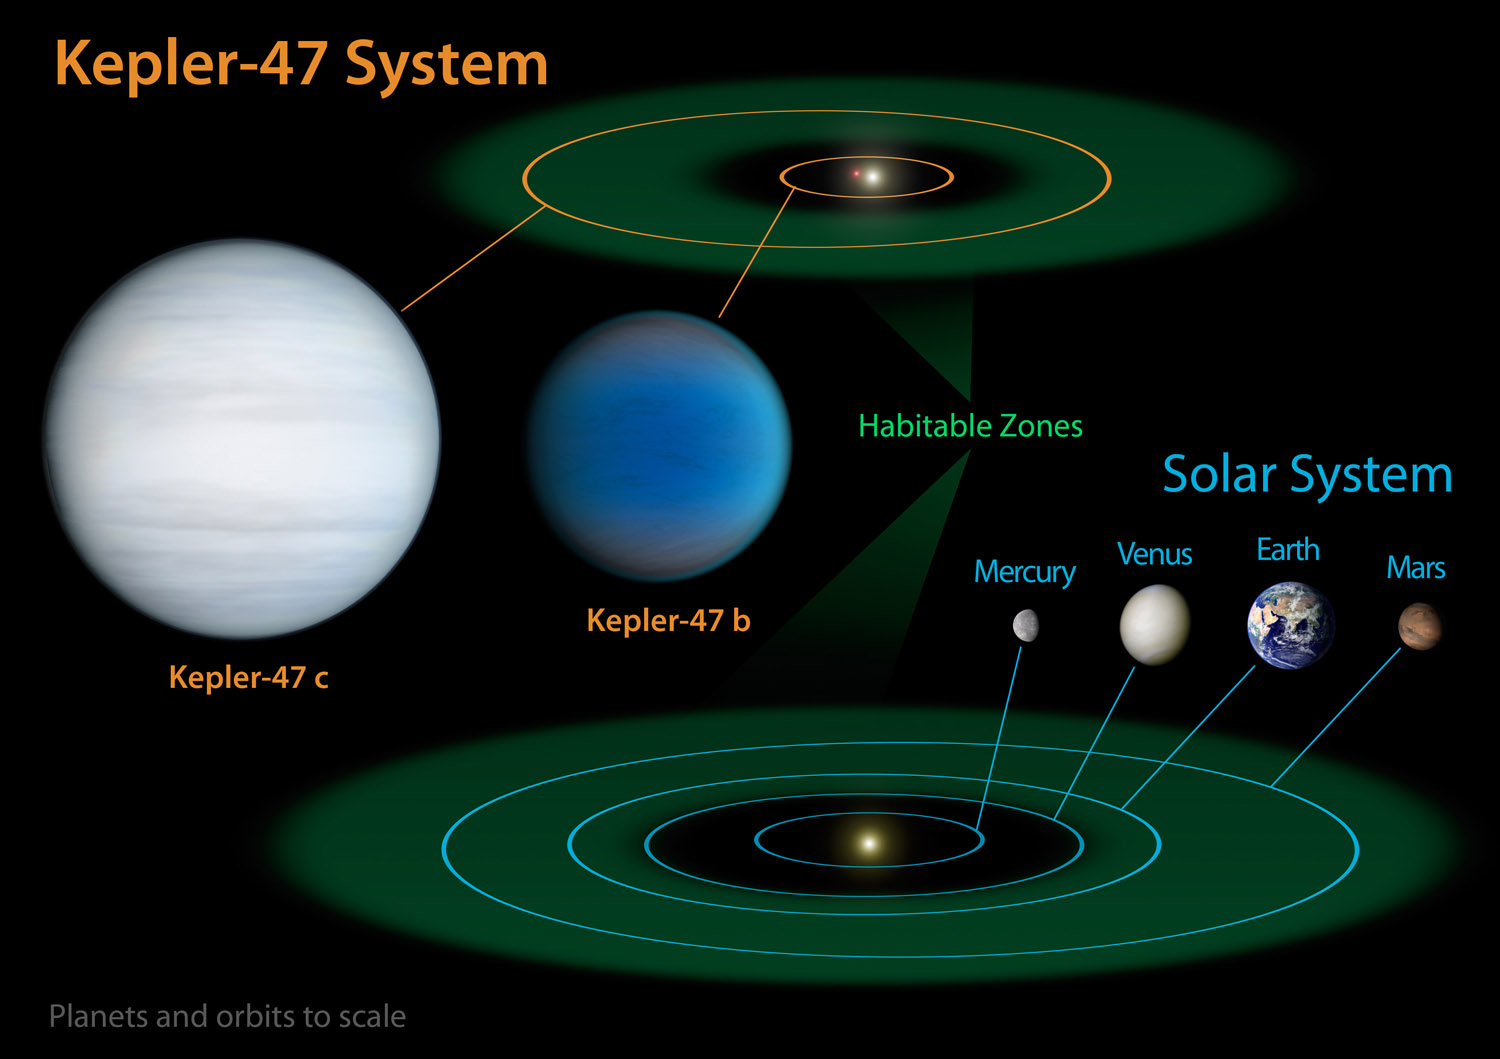 Kepler-47 Tatooine-Like Planets: Orbit Diagram